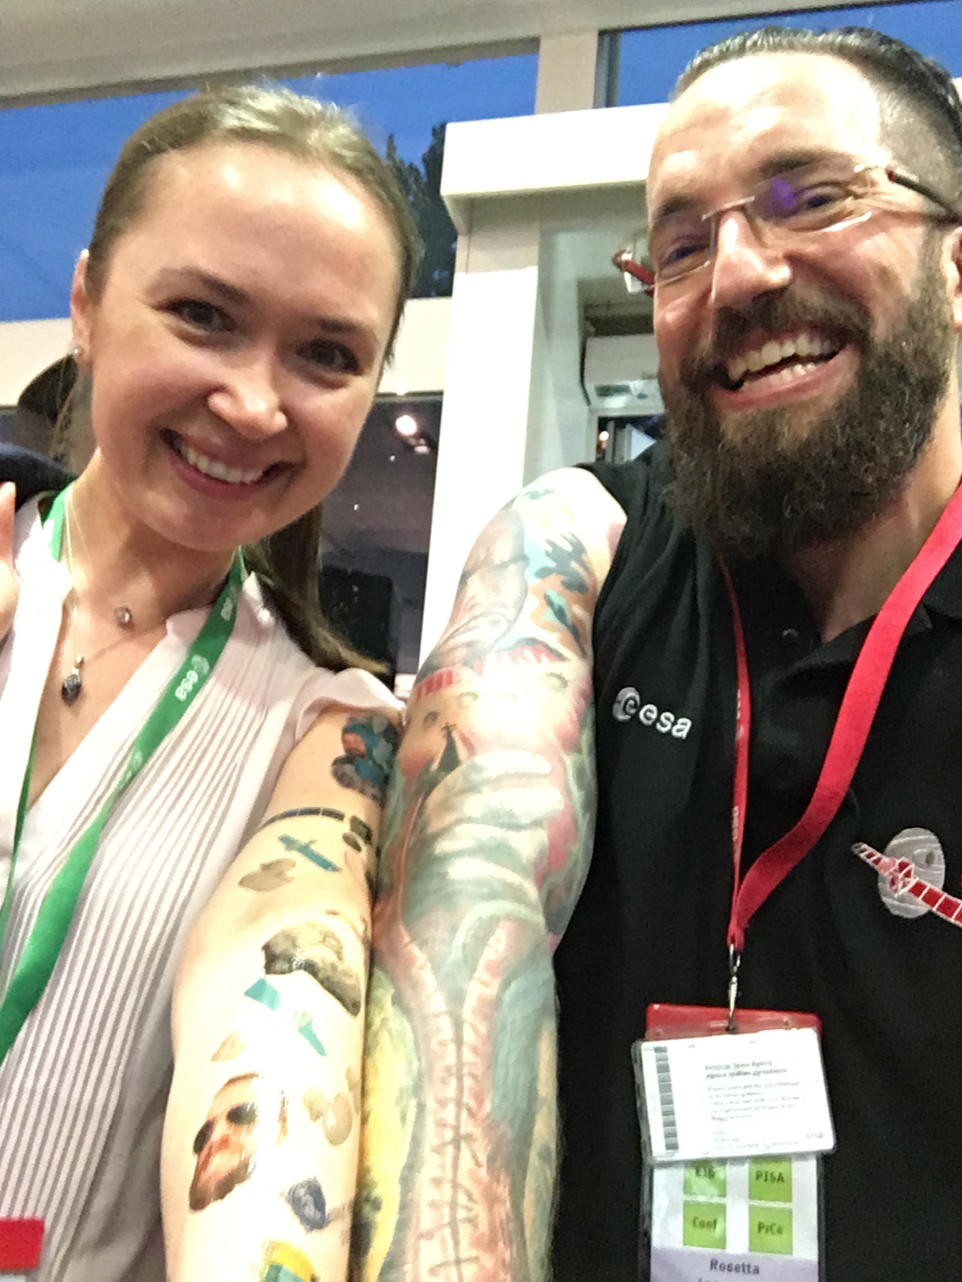 With Matt Taylor, showing off his real tattoos and my temporary ones inspired by Matt and Rosetta